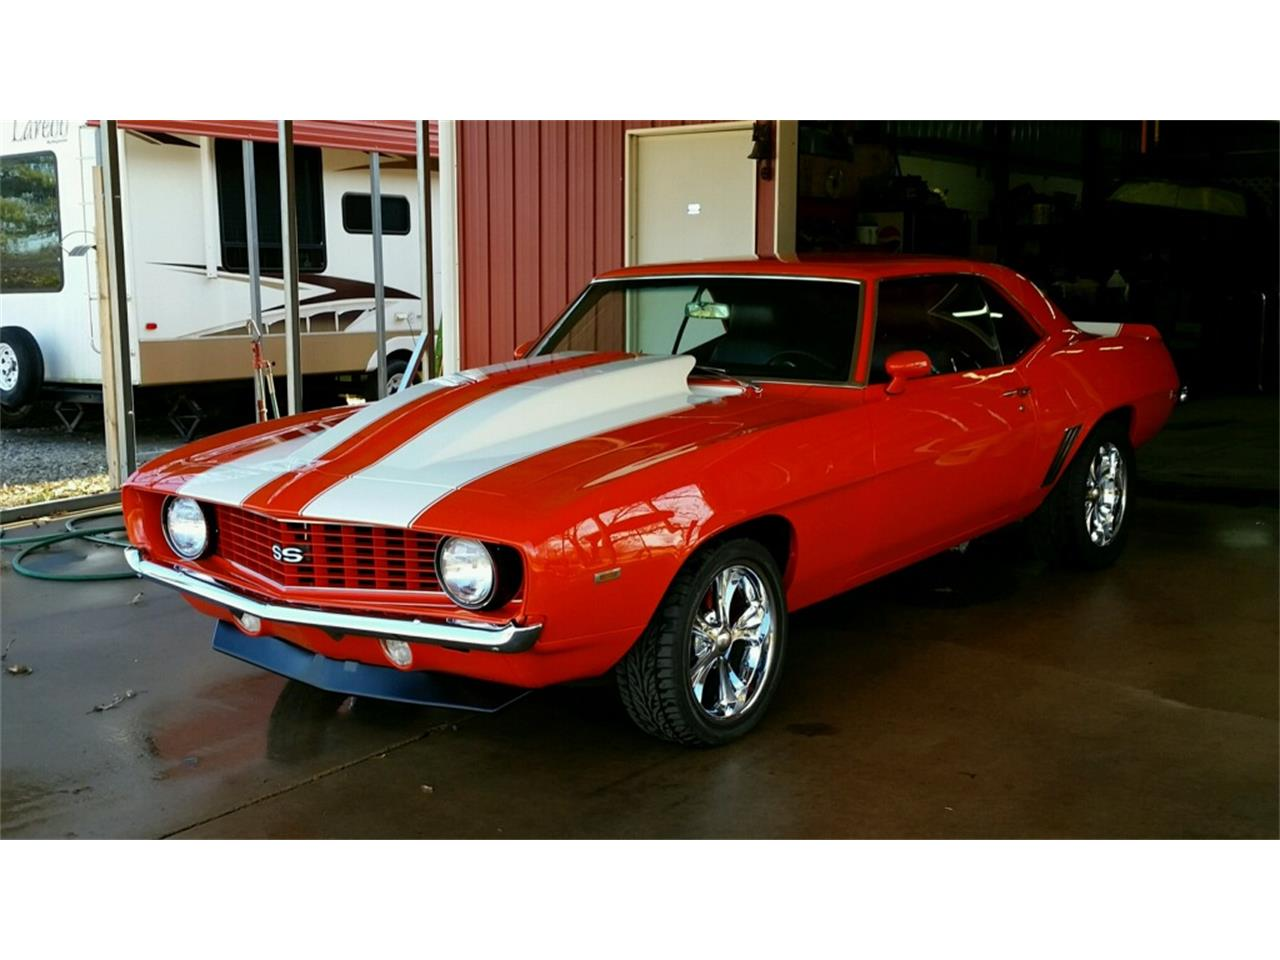 For Sale 1969 Chevrolet Camaro Ss In Fort Smith Arkansas